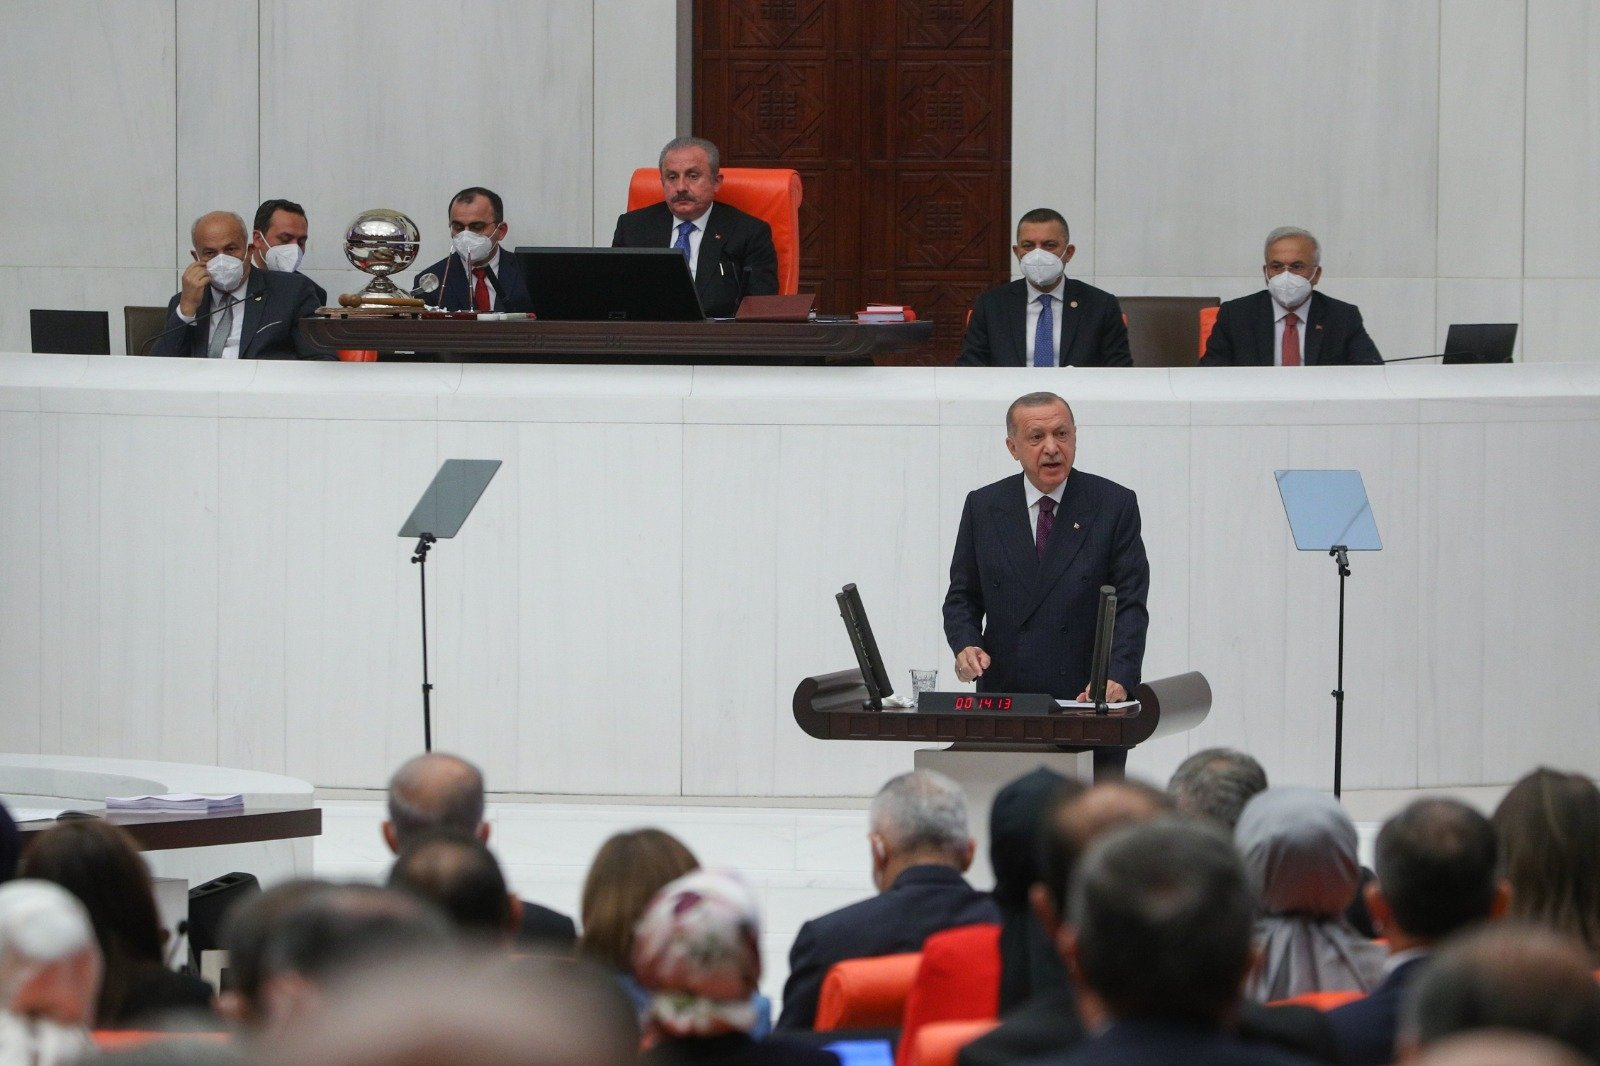 President Recep Tayyip Erdoğan made the opening speech at Parliament on the opening of the fifth legislative year of its 27th term of the Turkish Grand National Assembly (TBMM) in Ankara, Turkey, Oct. 1, 2021. (DHA Photo)